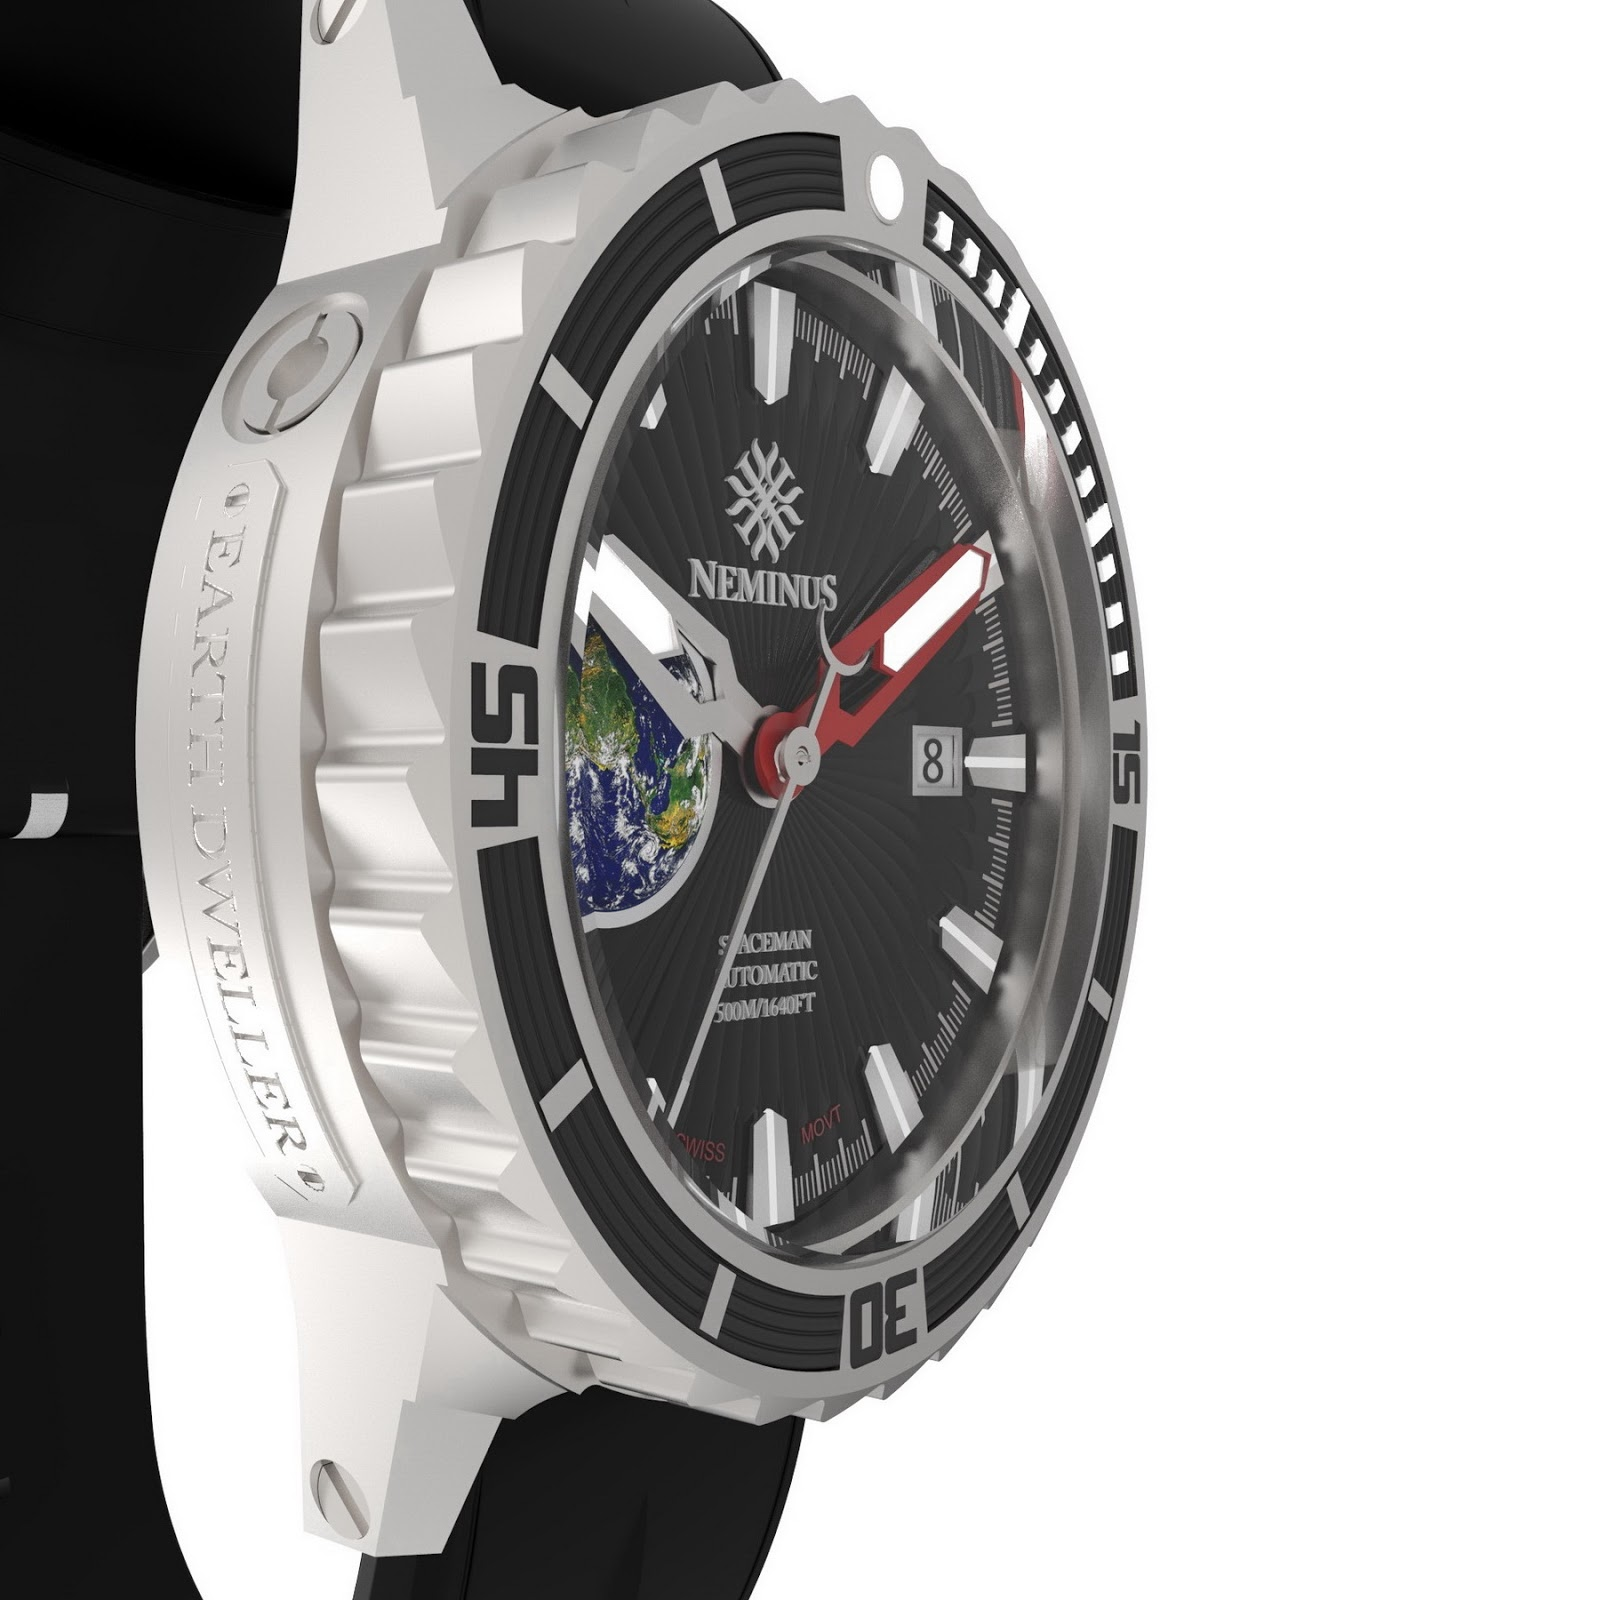 Neminus Spaceman Earth Dweller Swiss Automatic Diver Watch Limited Edition